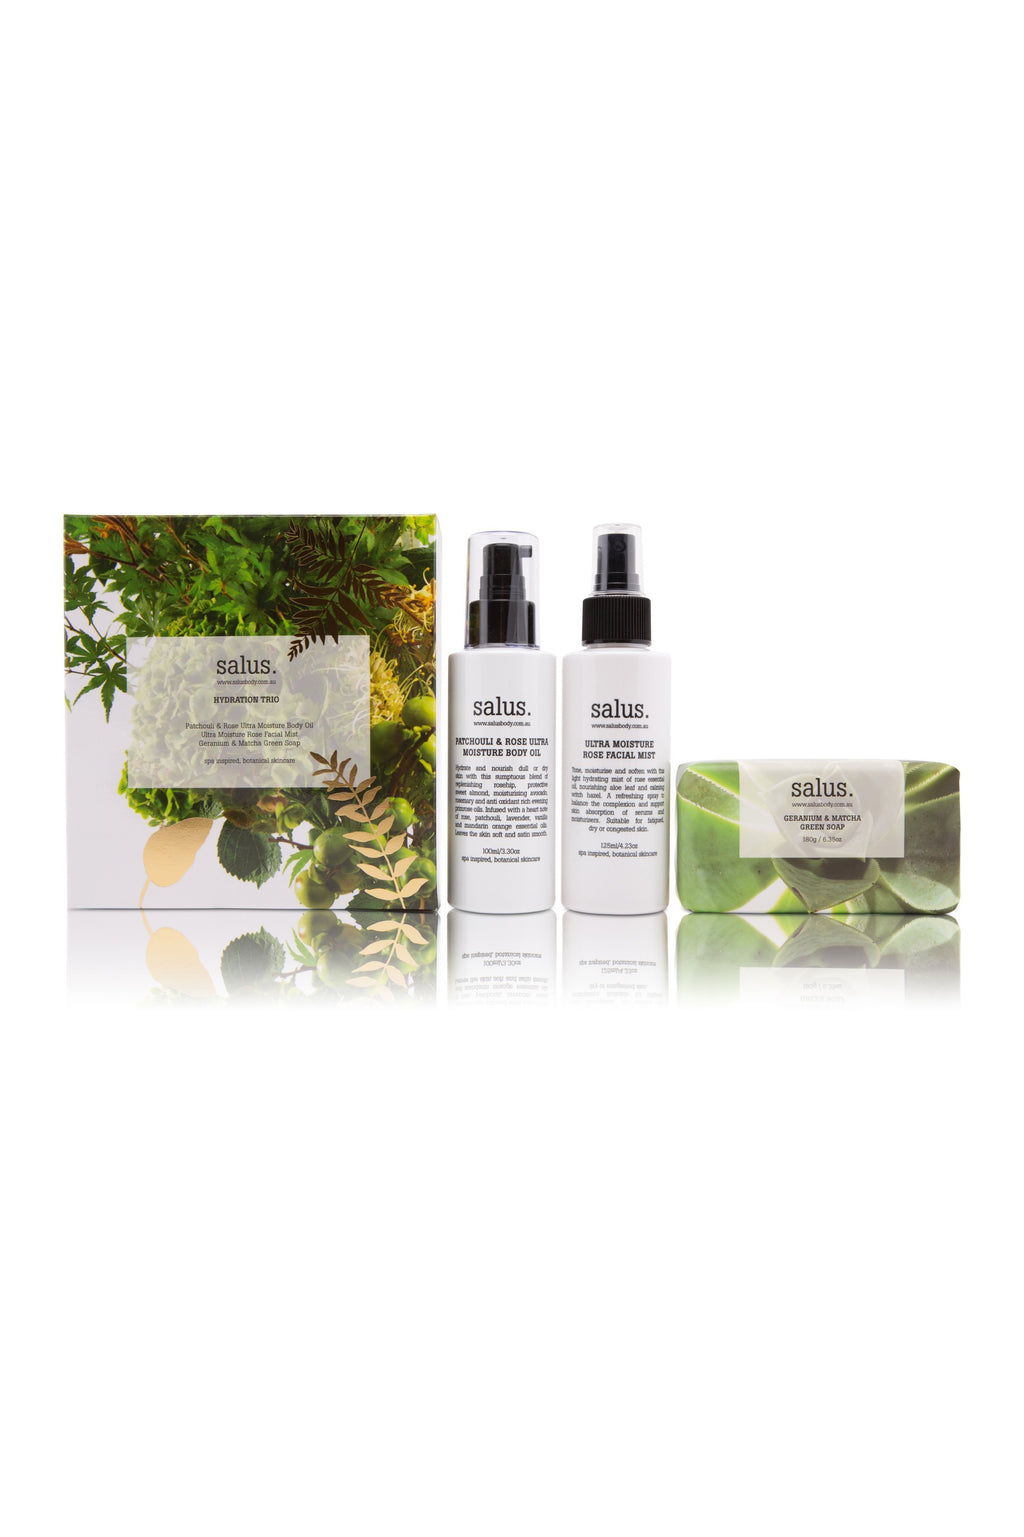 SALUS - GIFT SET - HYDRATION TRIO - Tempted Kensington